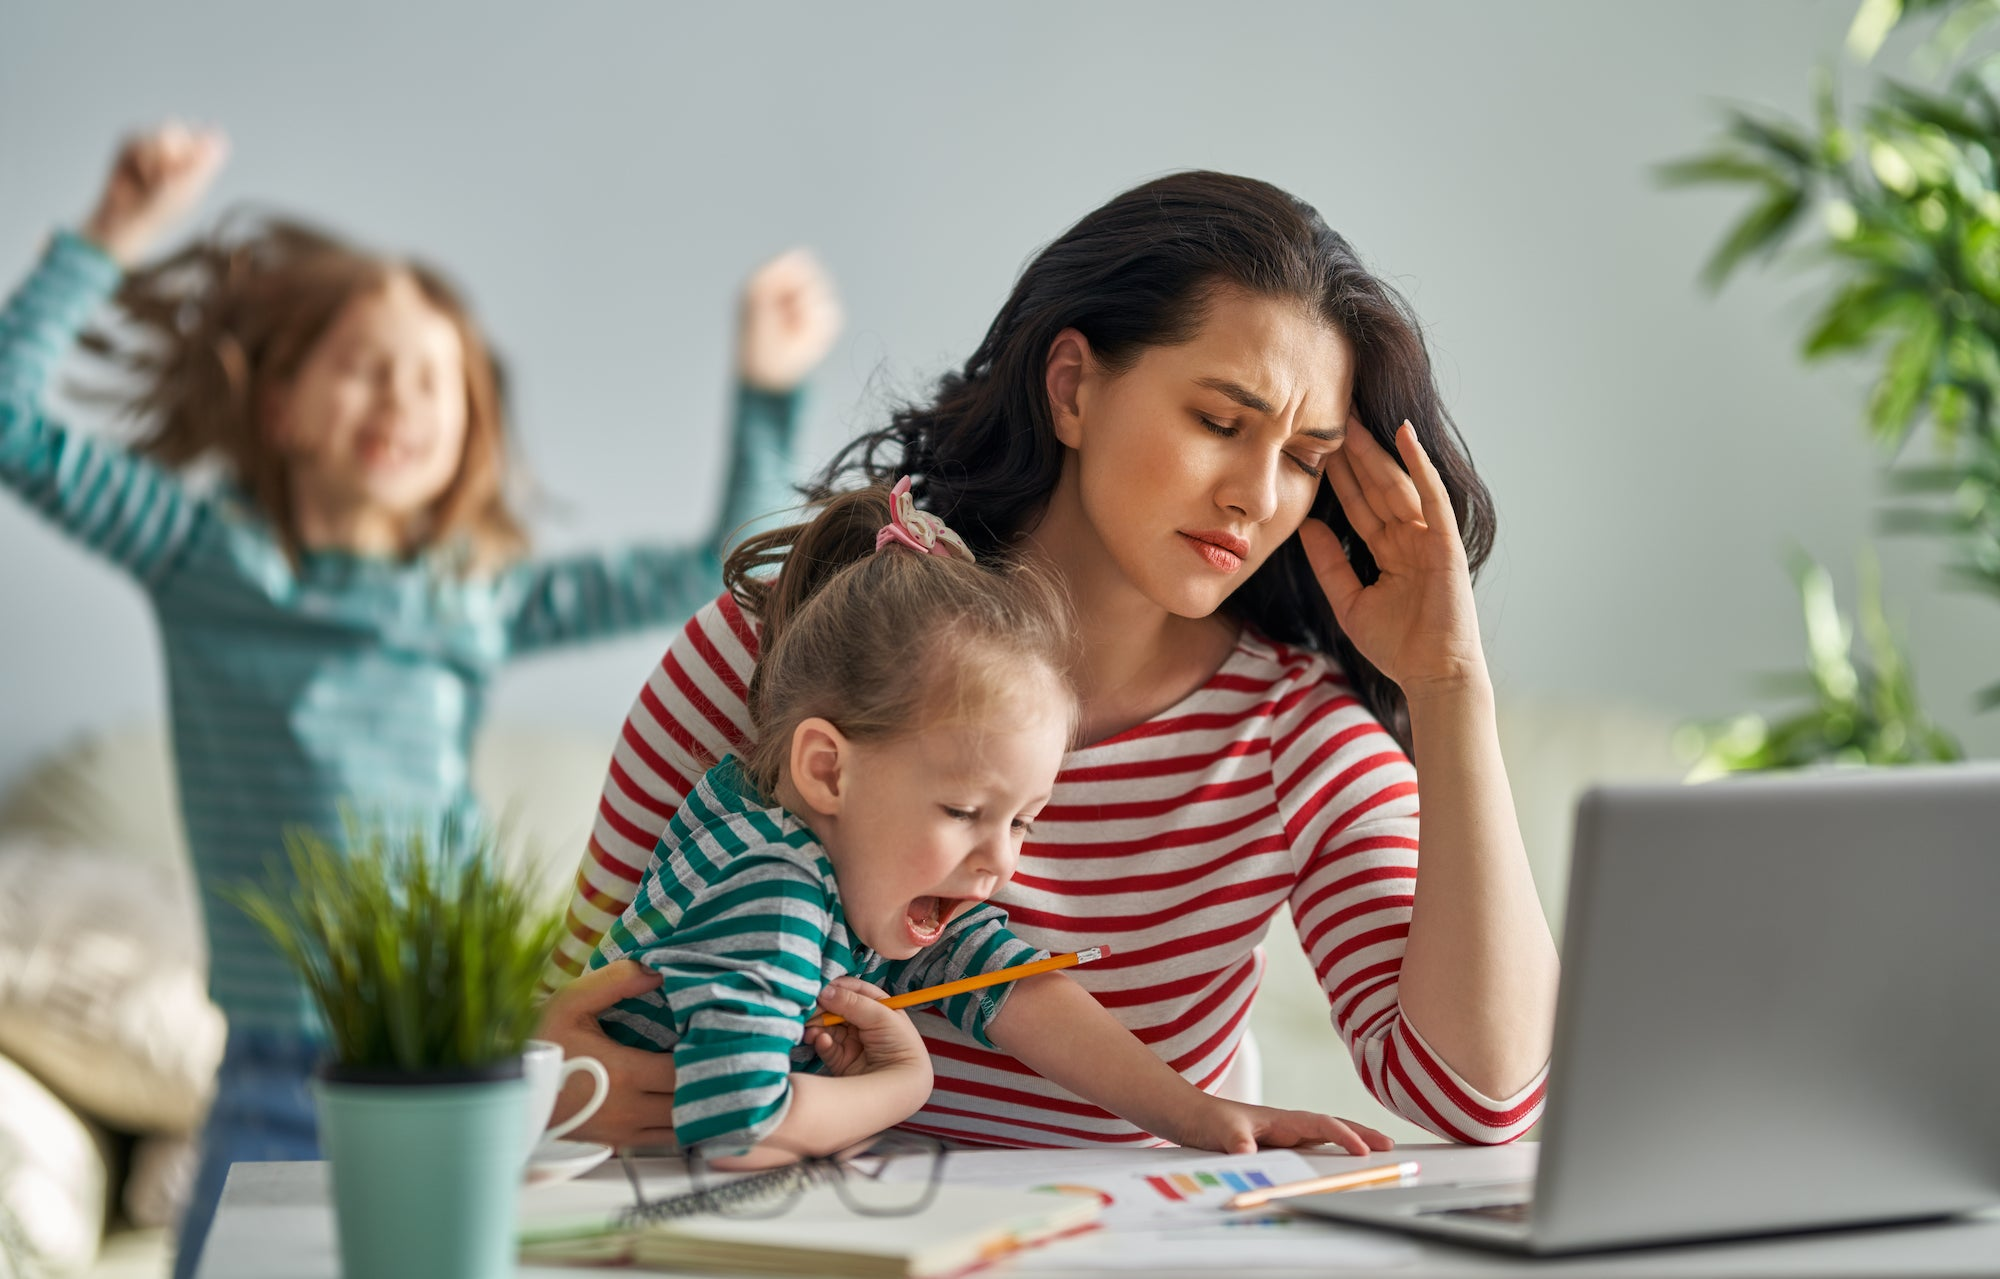 5 Tips to Overcome Working Mom Stress